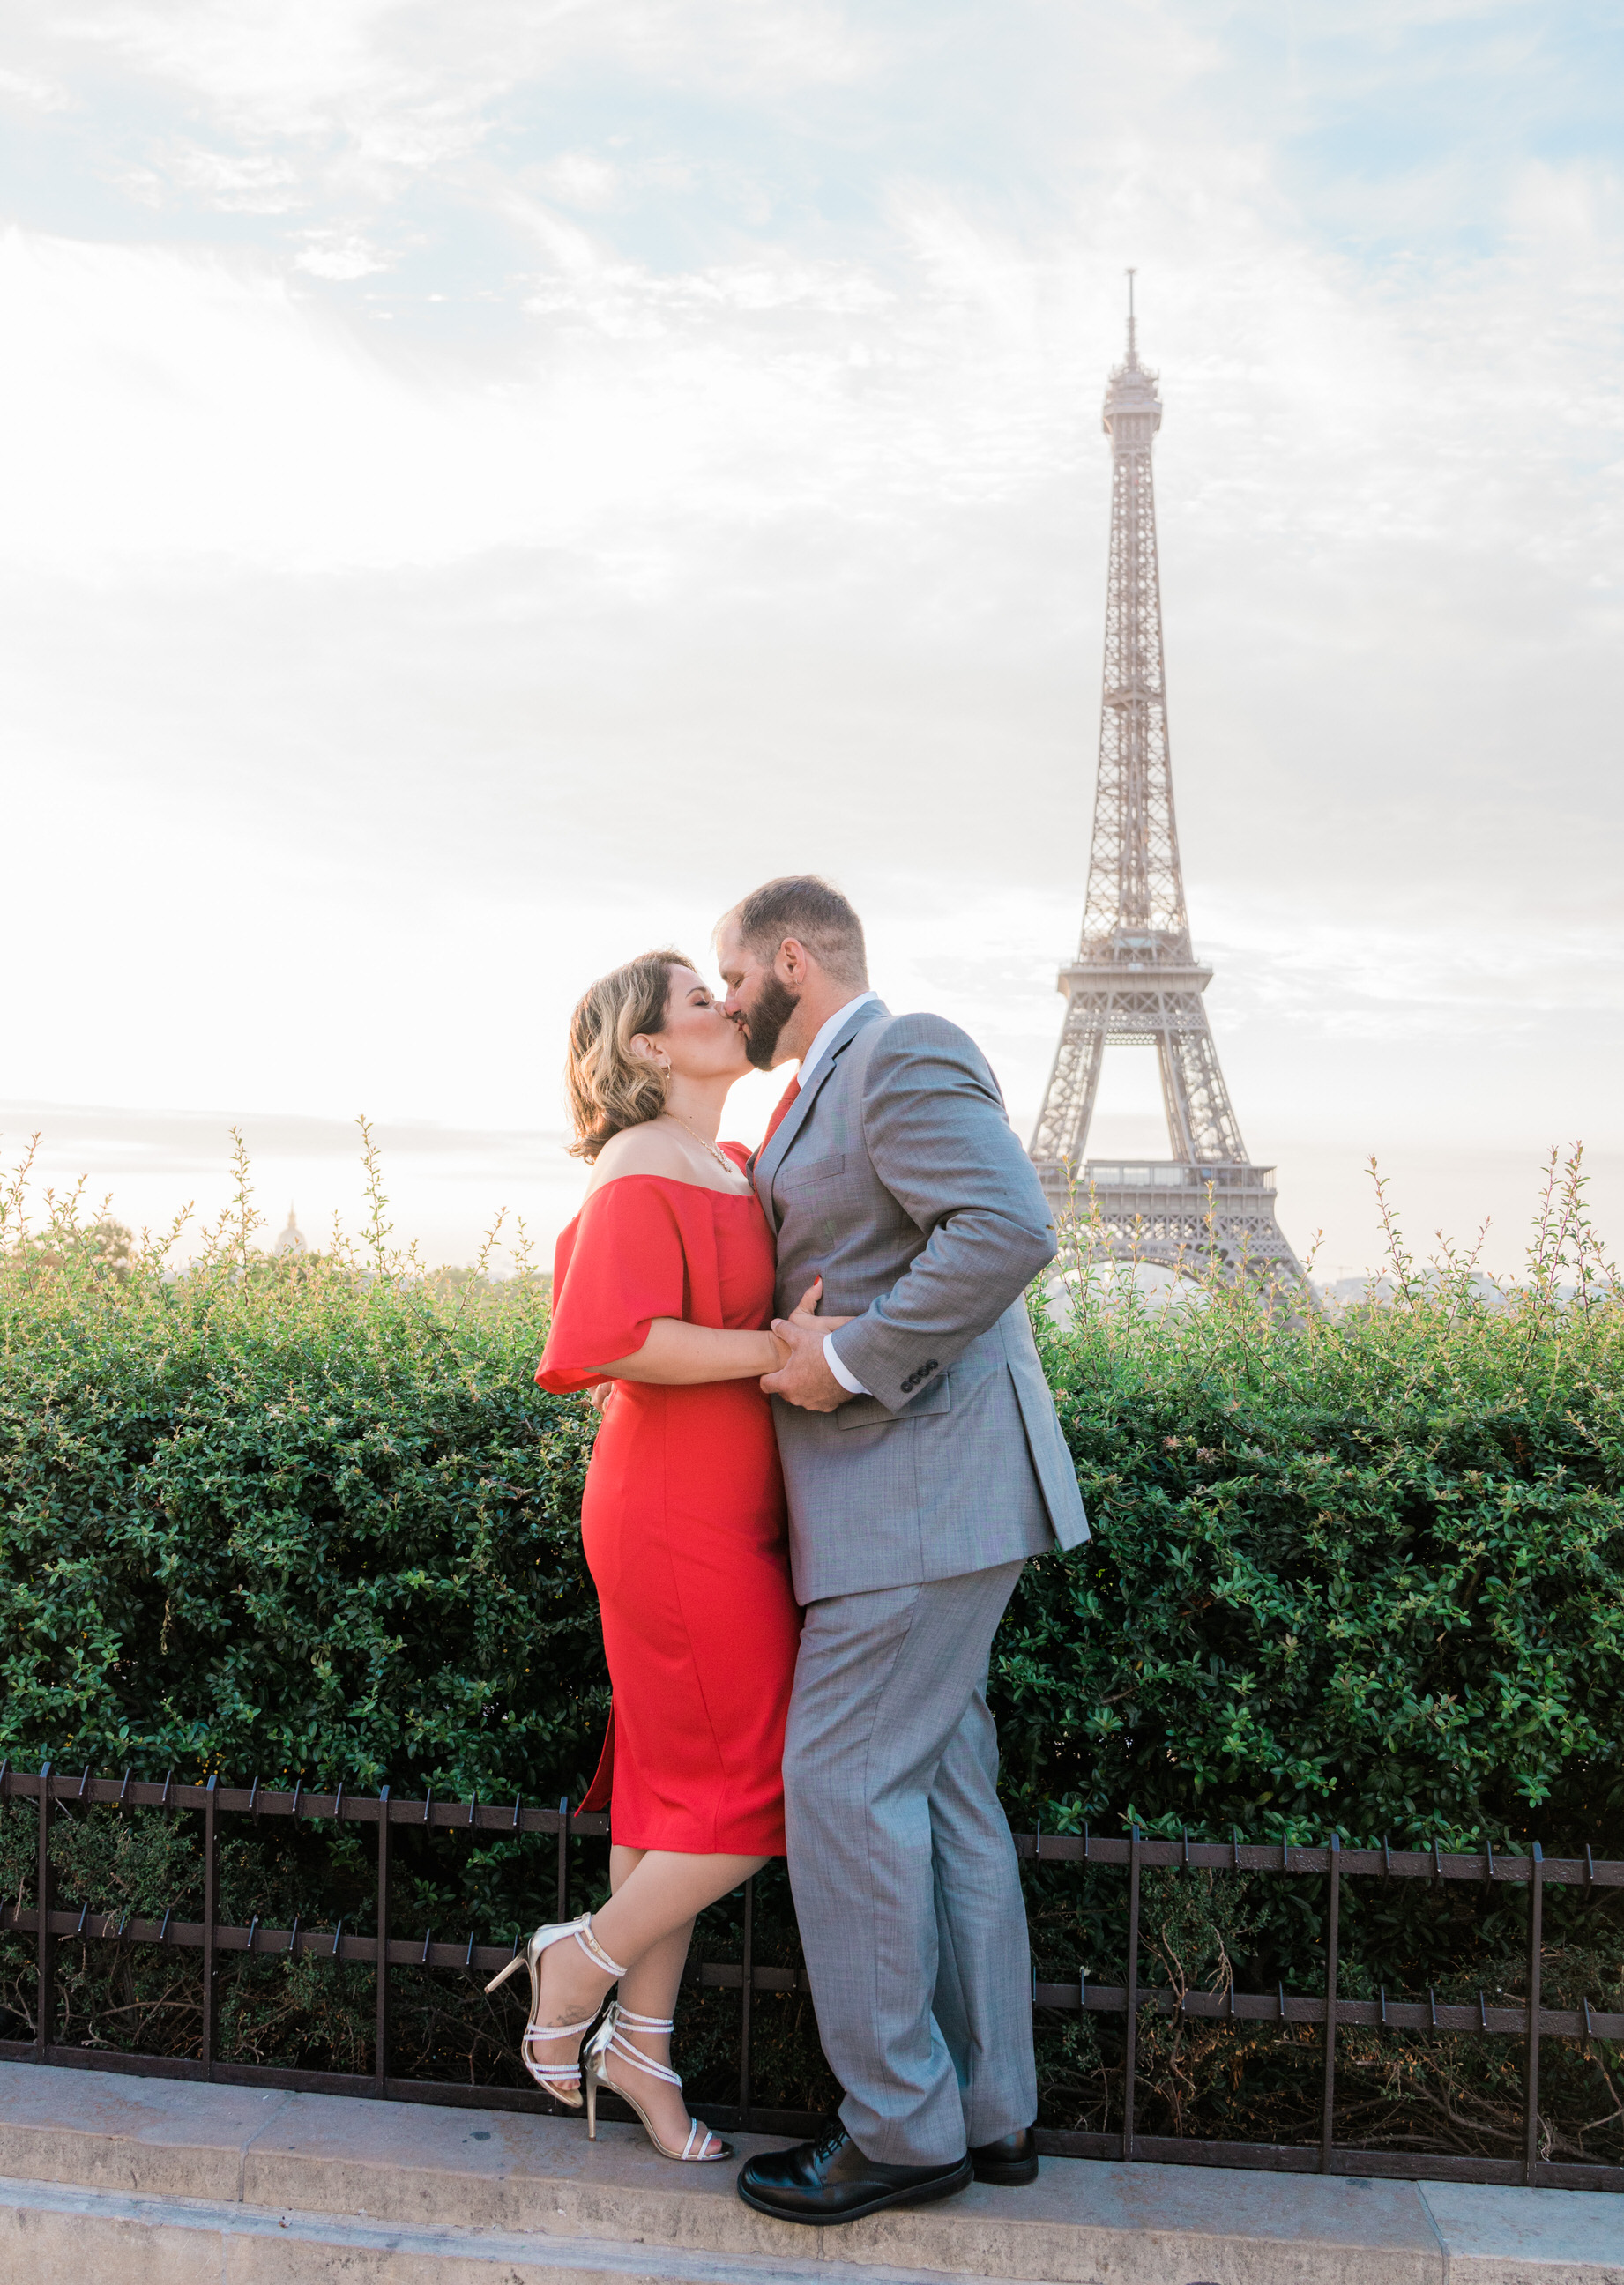 Celebrating a lifetime of love at the Eiffel Tower